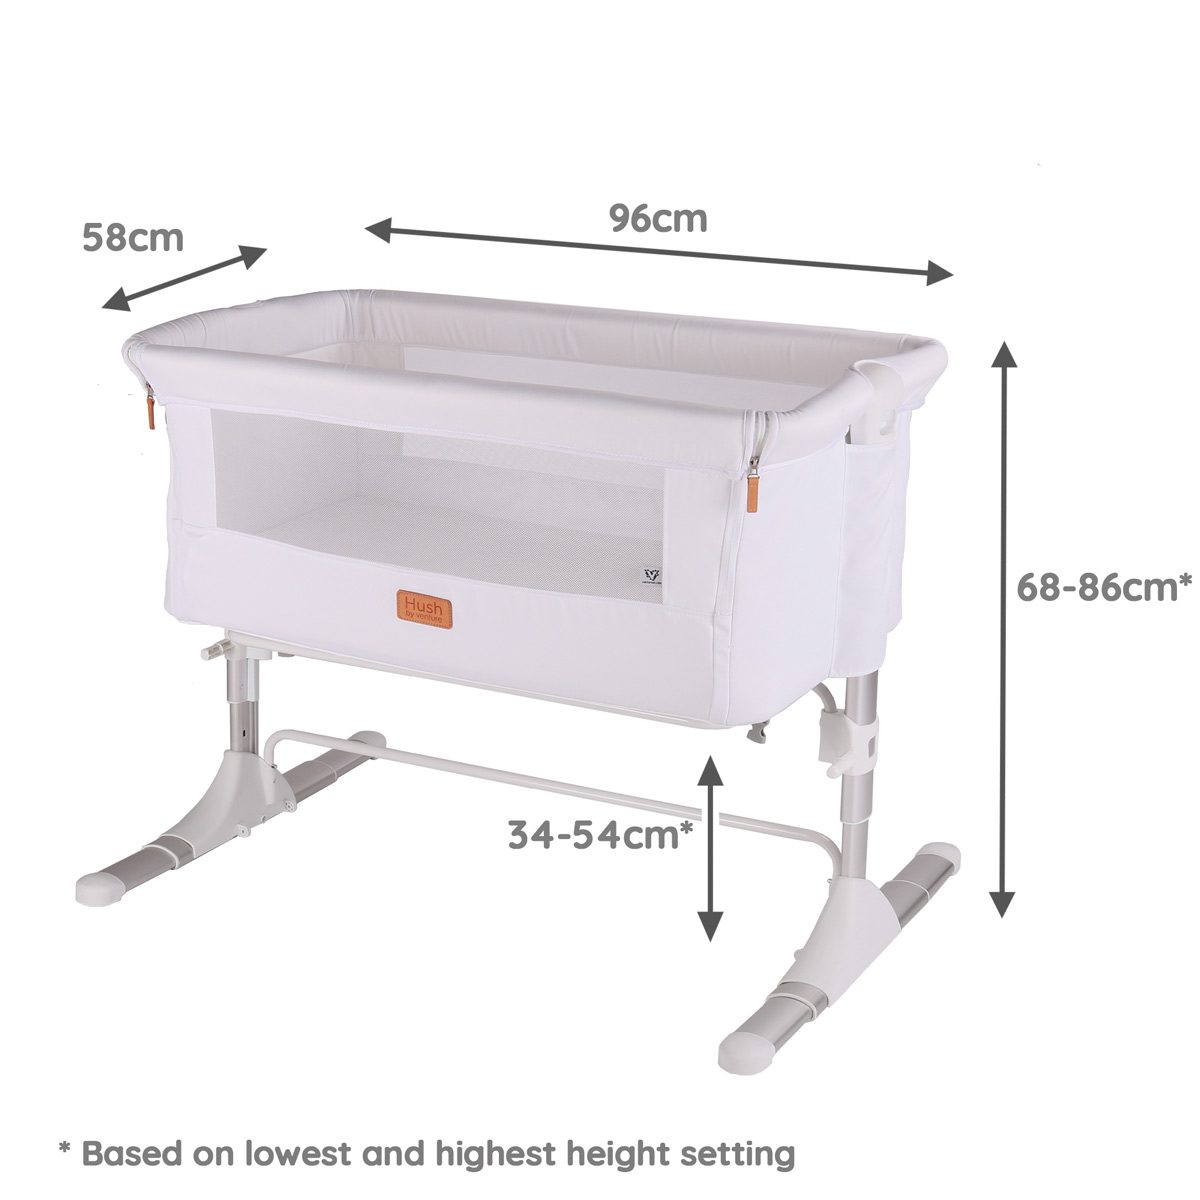 Hush Co sleeper & bedside crib dimensions